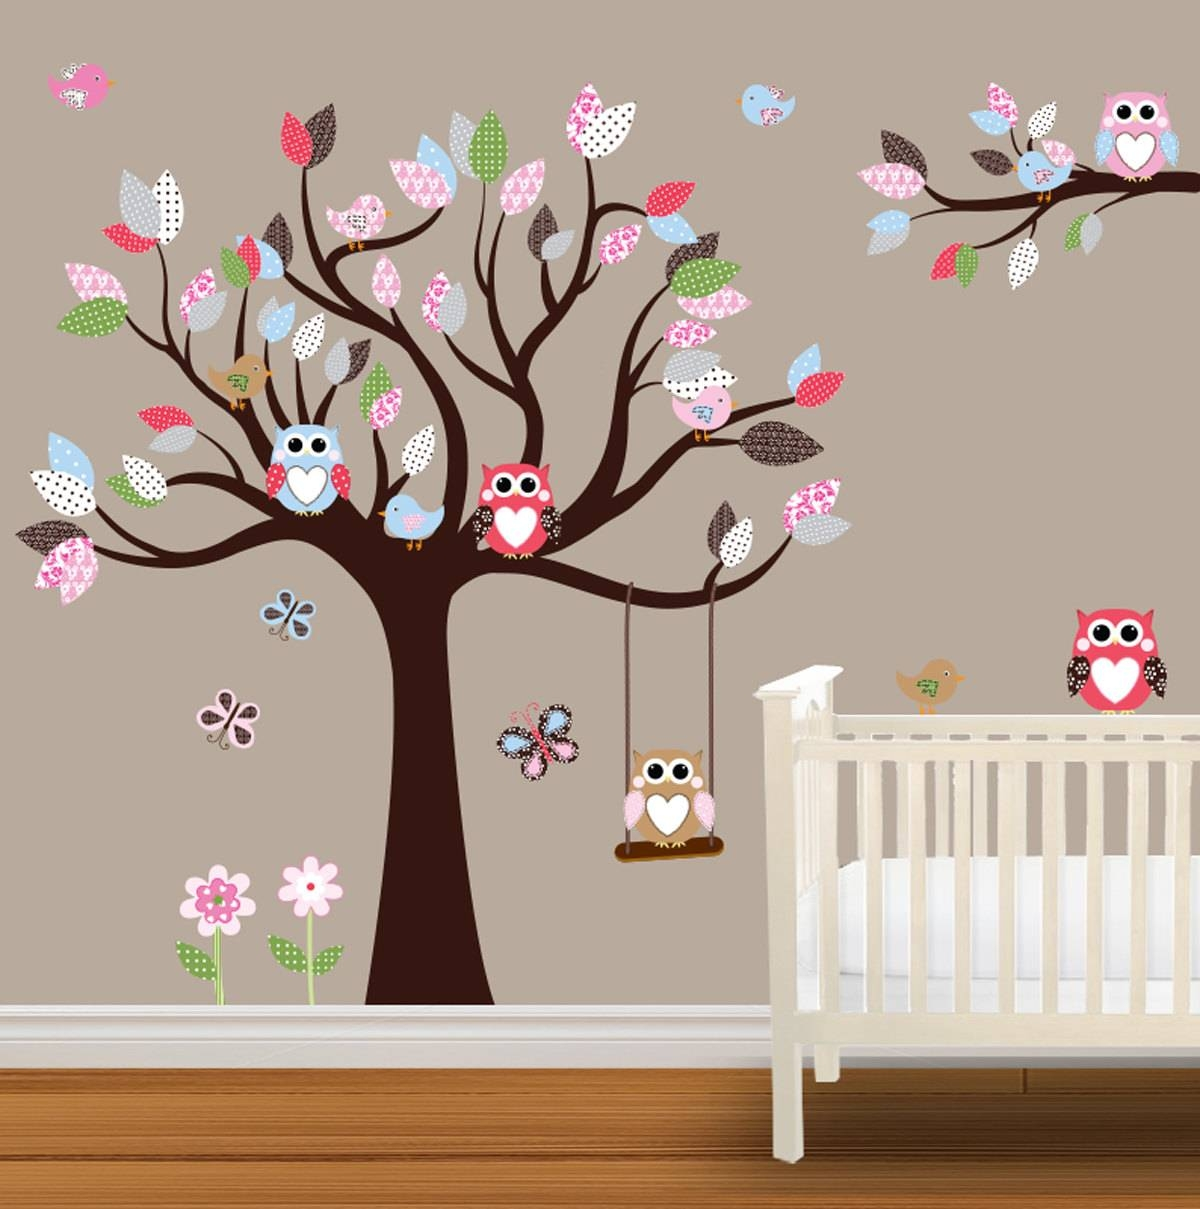 Wall Art Stickers Baby Room – Wall Decor Stickers: Simply For Most Current Wall Art Stickers For Childrens Rooms (View 9 of 20)